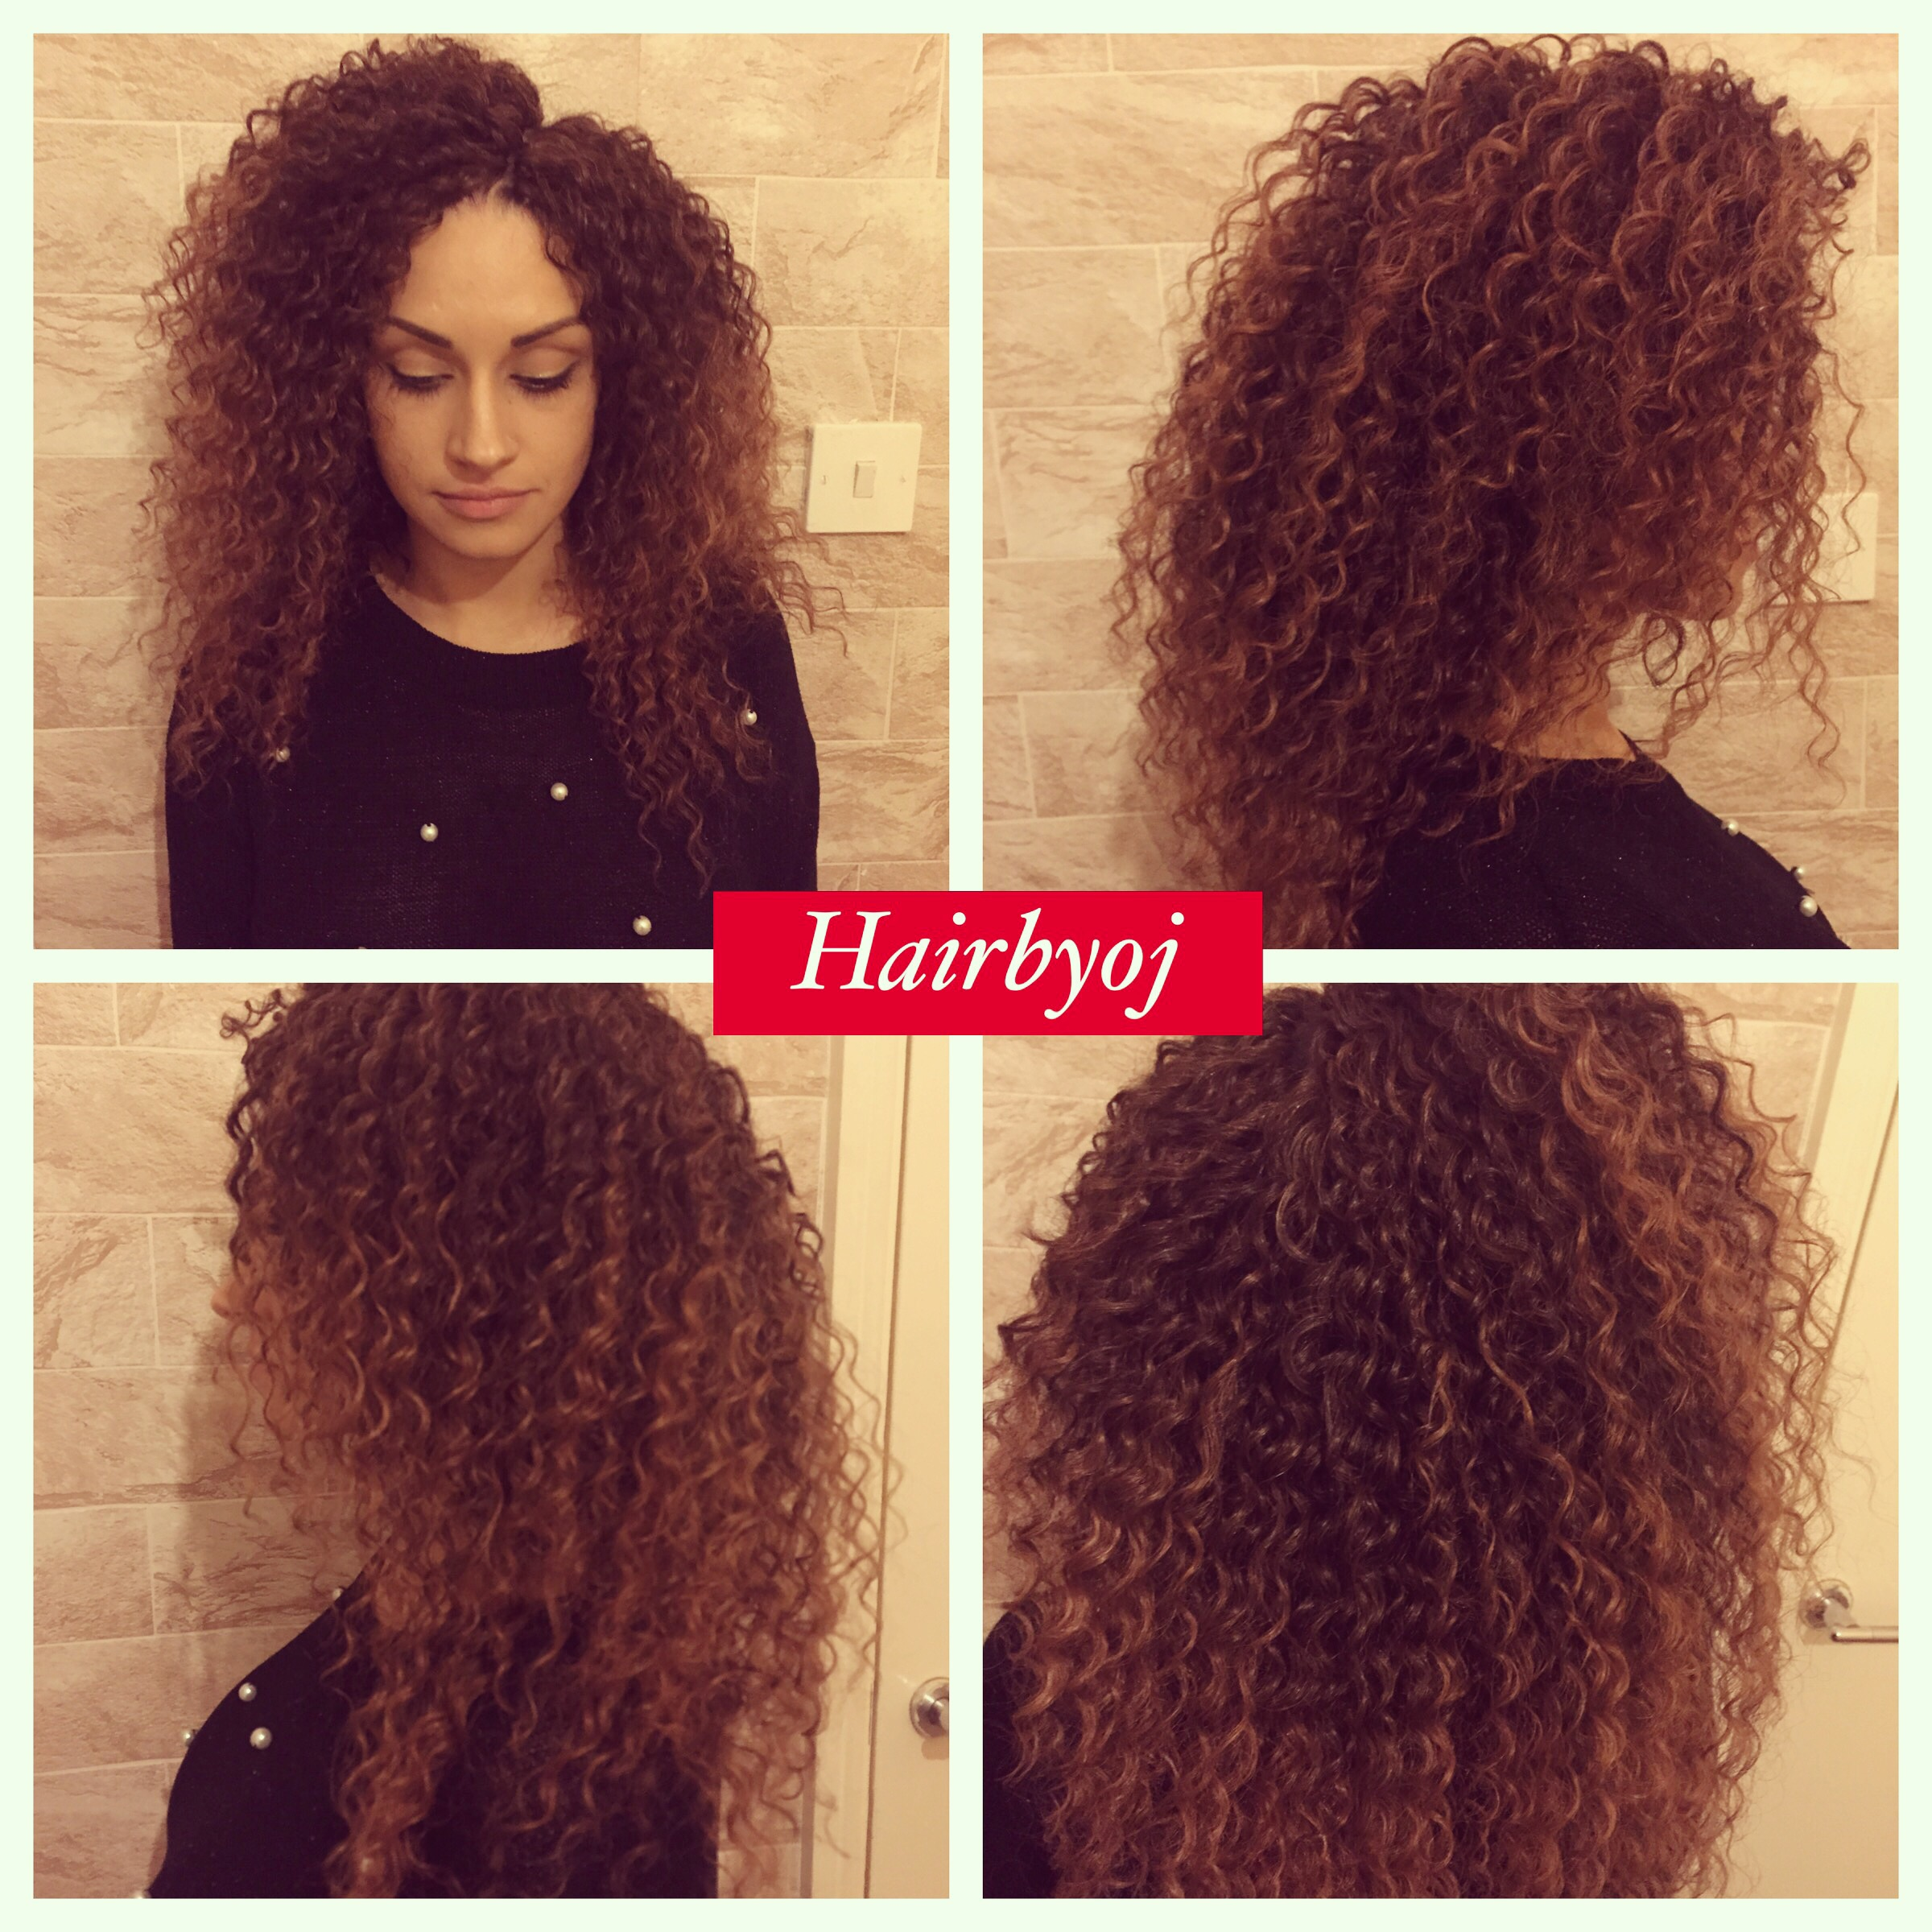 ... length wavy ombrE knotless crochet braids. No leave out ? hairbyoj